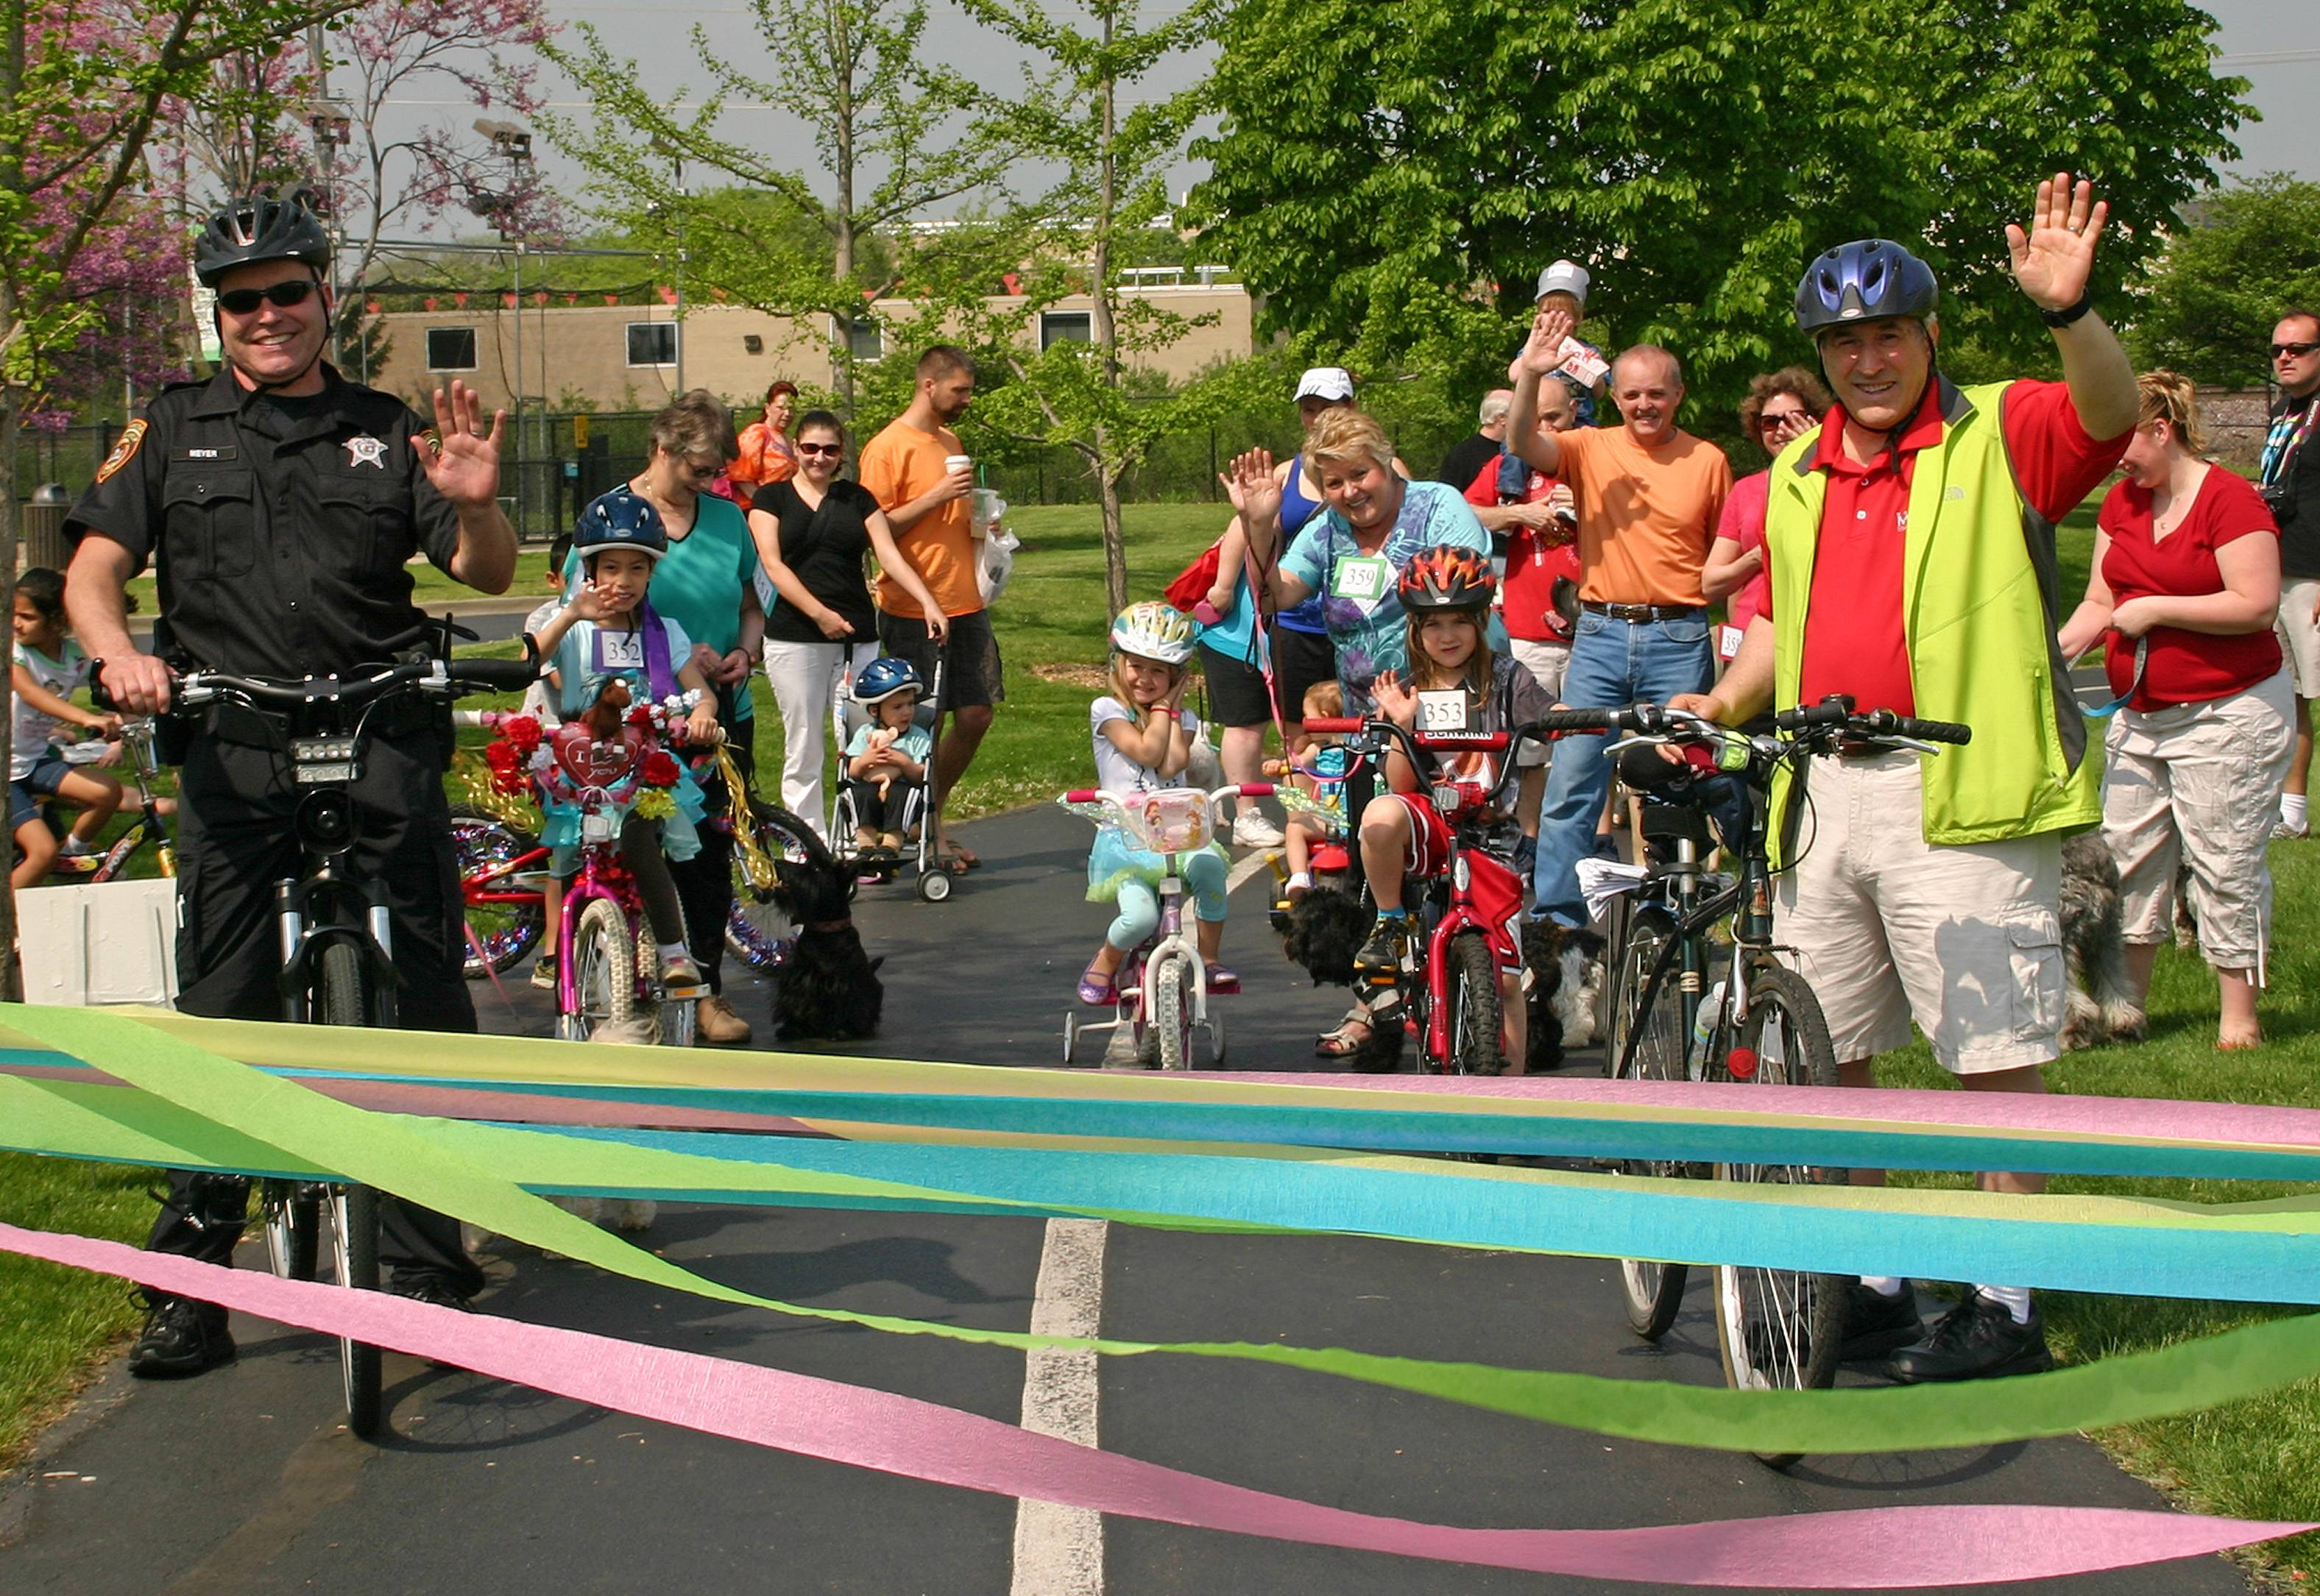 State Representative Martin J. Moylan and Des Plaines Officer Michael Meyers get ready to lead the 11th annual Pooch, Pet, and Pedal Parade through the park at Mountain View Adventure Center at the Spring Fun Fair on May 18.